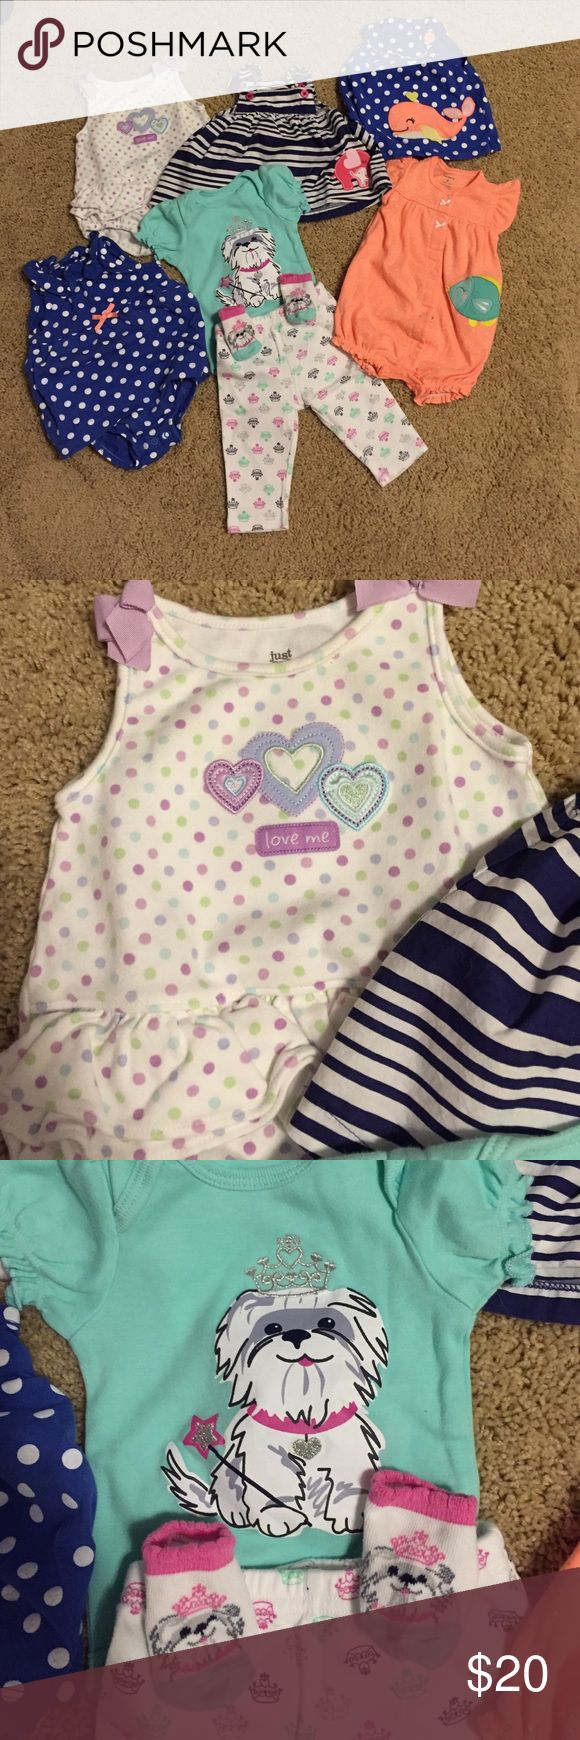 3 Month Baby Girl Summer Bundle Bundle includes six baby girl outfits: three one pieces (one blue with white polka dots, one white with lavender, blue, and green polka dots, and one orange with white polka dots and a green fish), two sleeveless tops (one navy with white stripes and a pink elephant and one blue with white polka dots and an orange whale), and one matching set (mint green onesie with a dog on it with matching pants and socks). Matching Sets